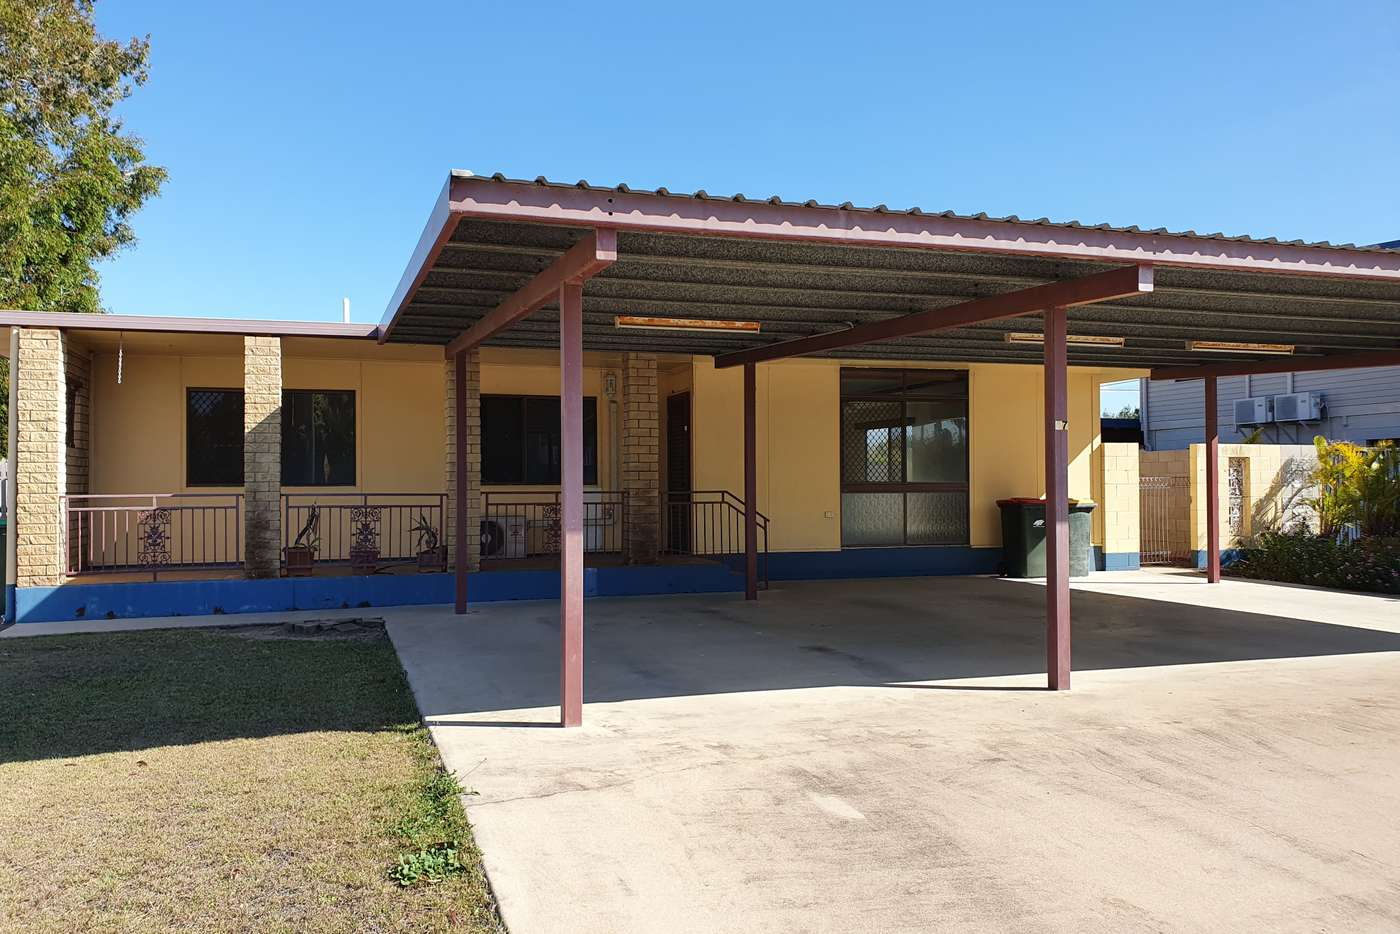 Main view of Homely house listing, 47 Bowling Green Street, Brandon QLD 4808